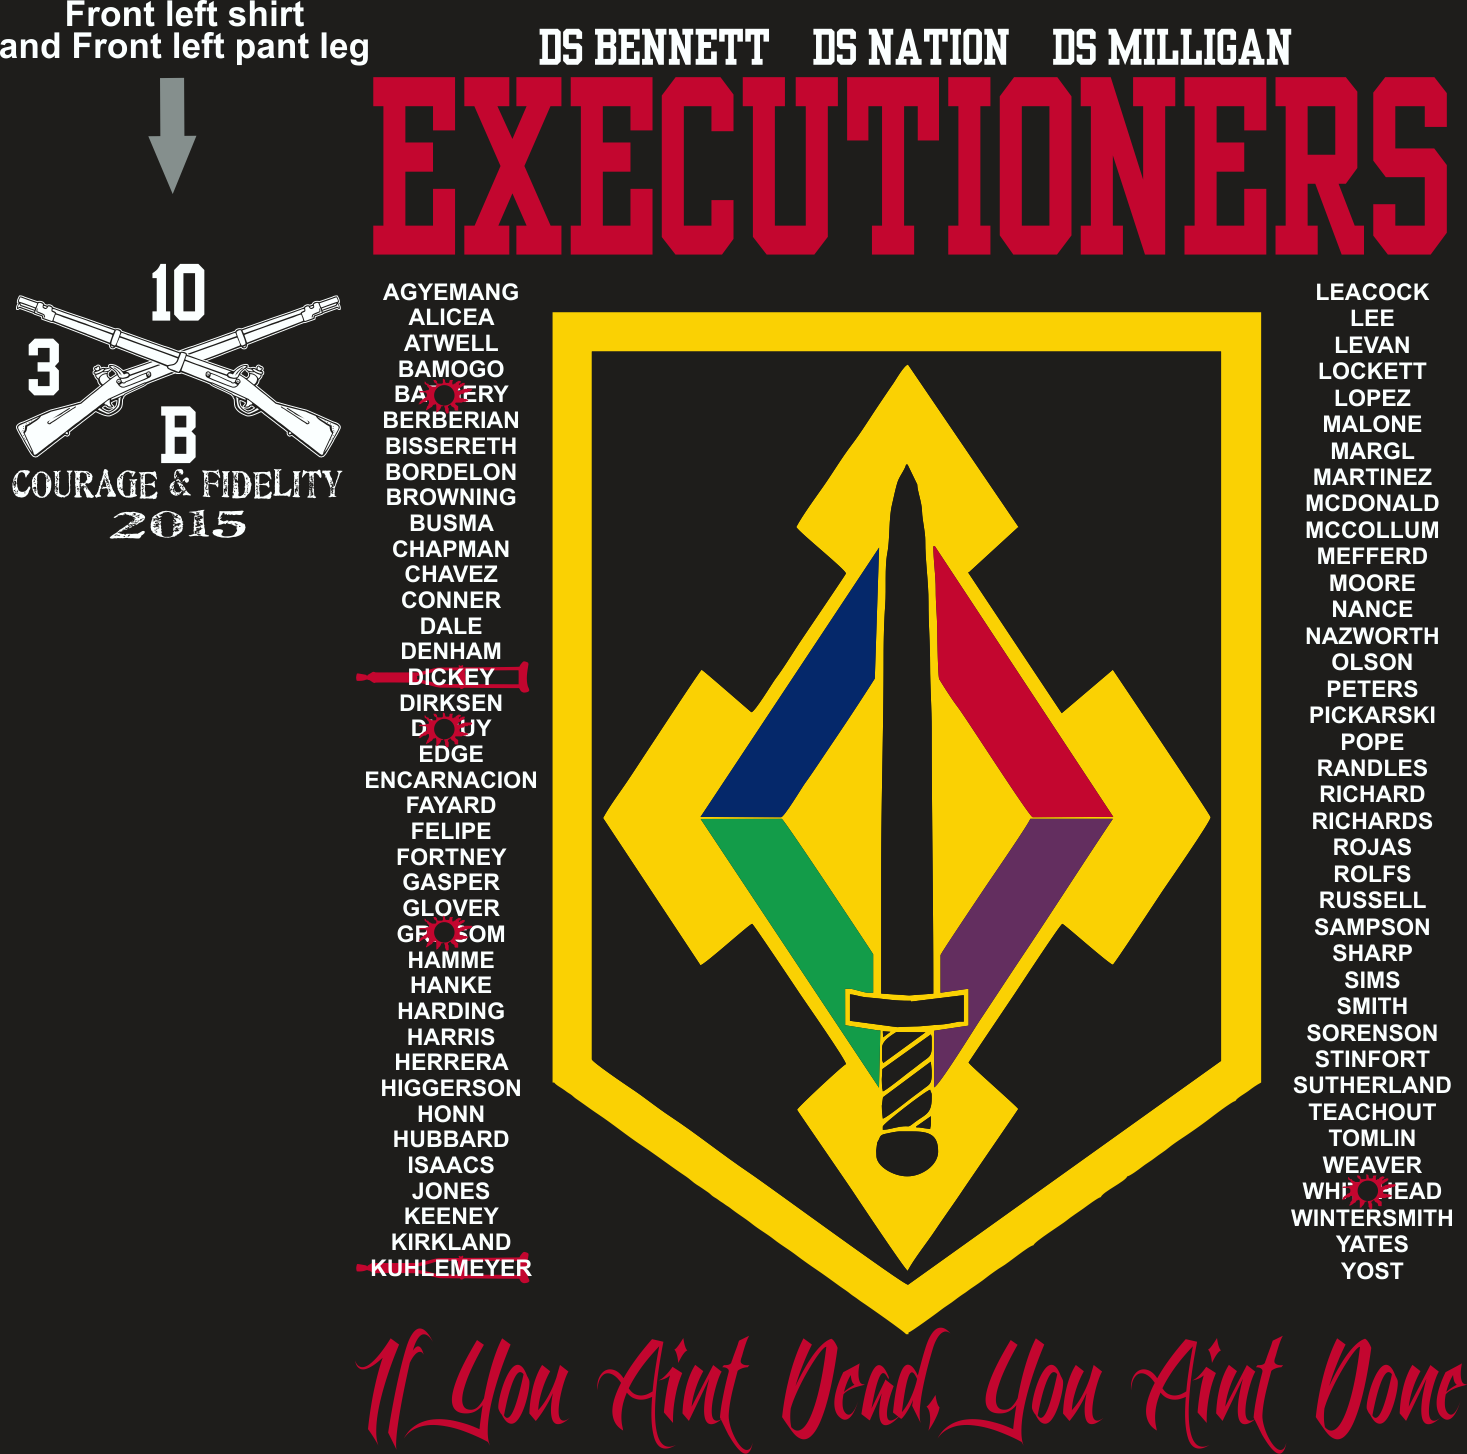 BRAVO 3-10 EXECUTIONERS GRADUATING DAY 8-13-2015 digital